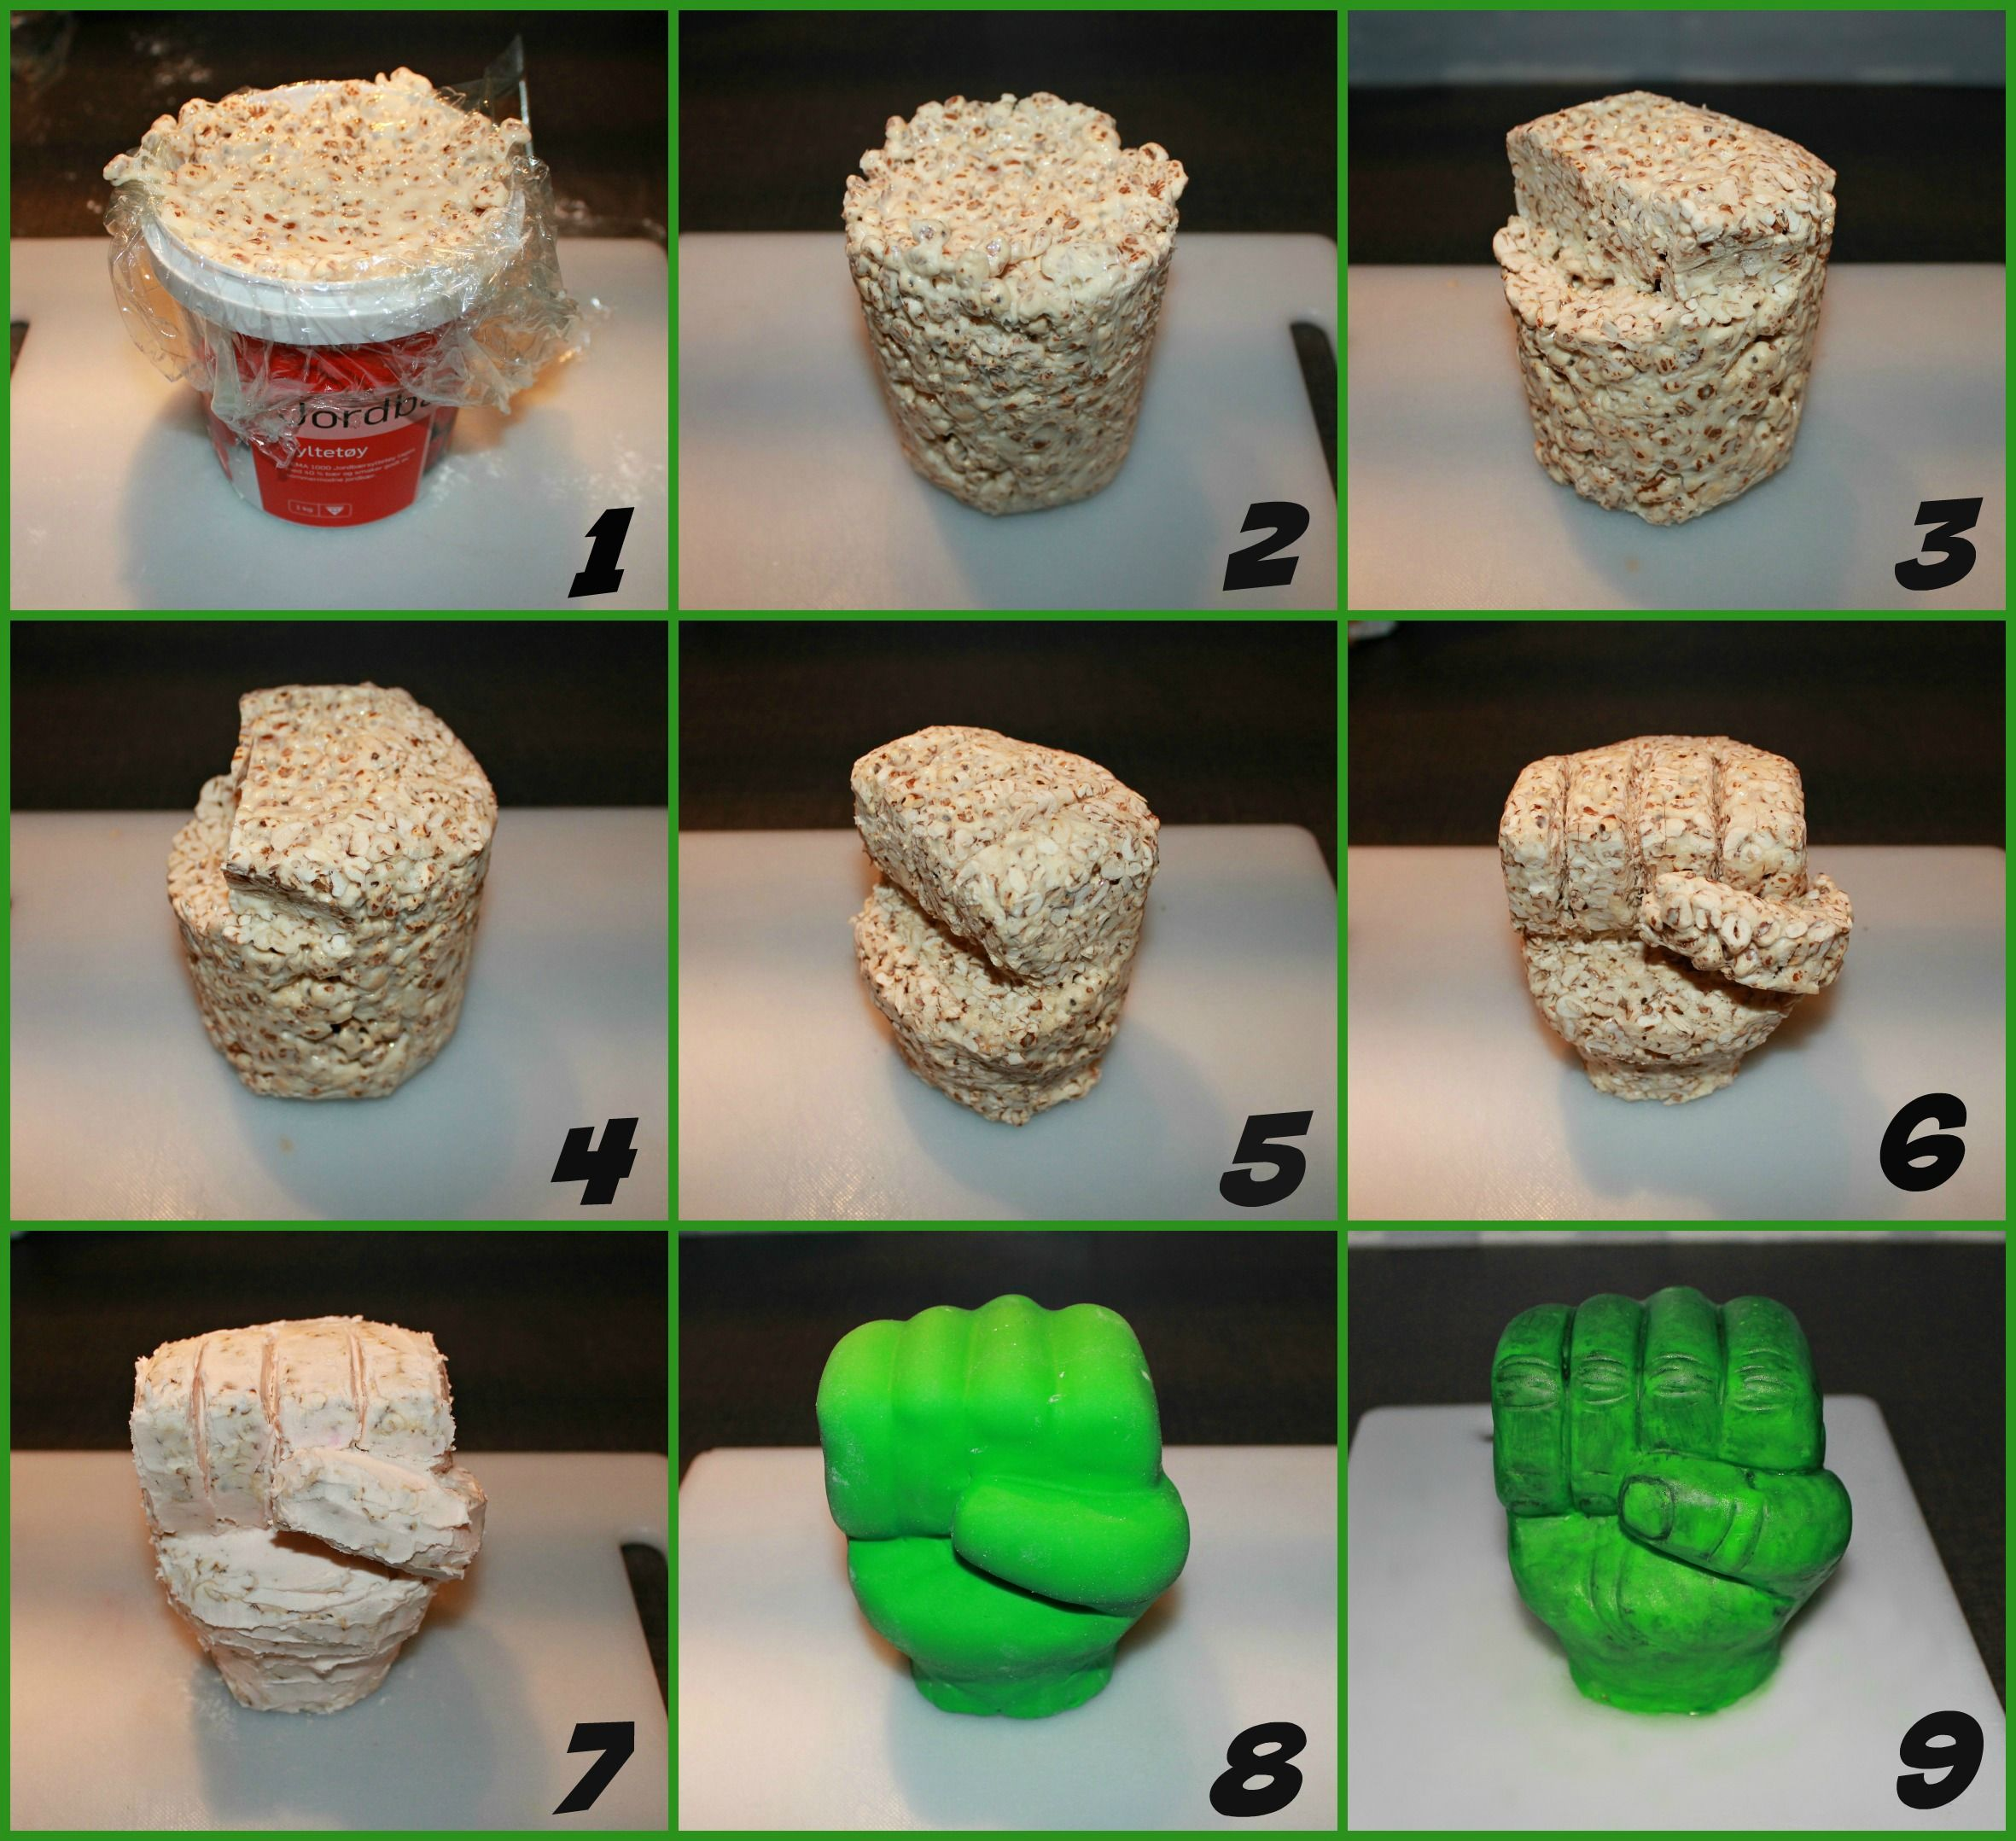 How to make a Hulk hand from Rice Krispies step by step Baking